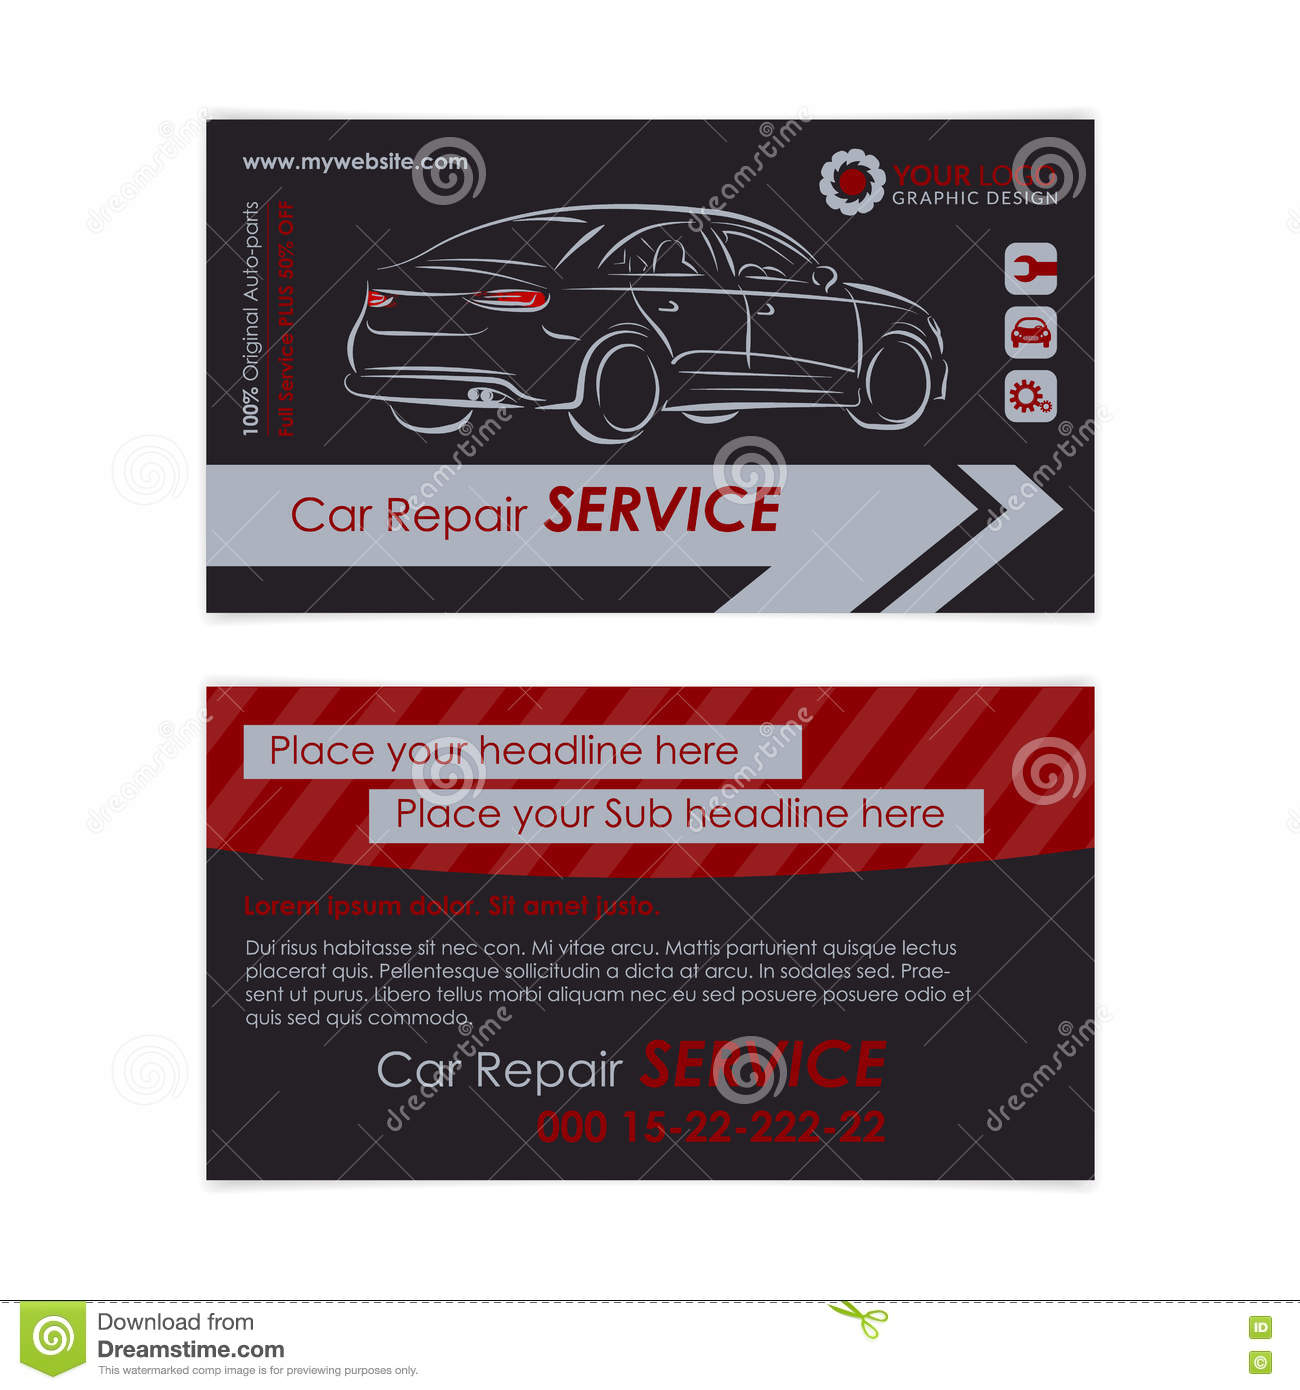 Auto repair business card template create your own business cards auto repair business card template create your own business cards cheaphphosting Choice Image